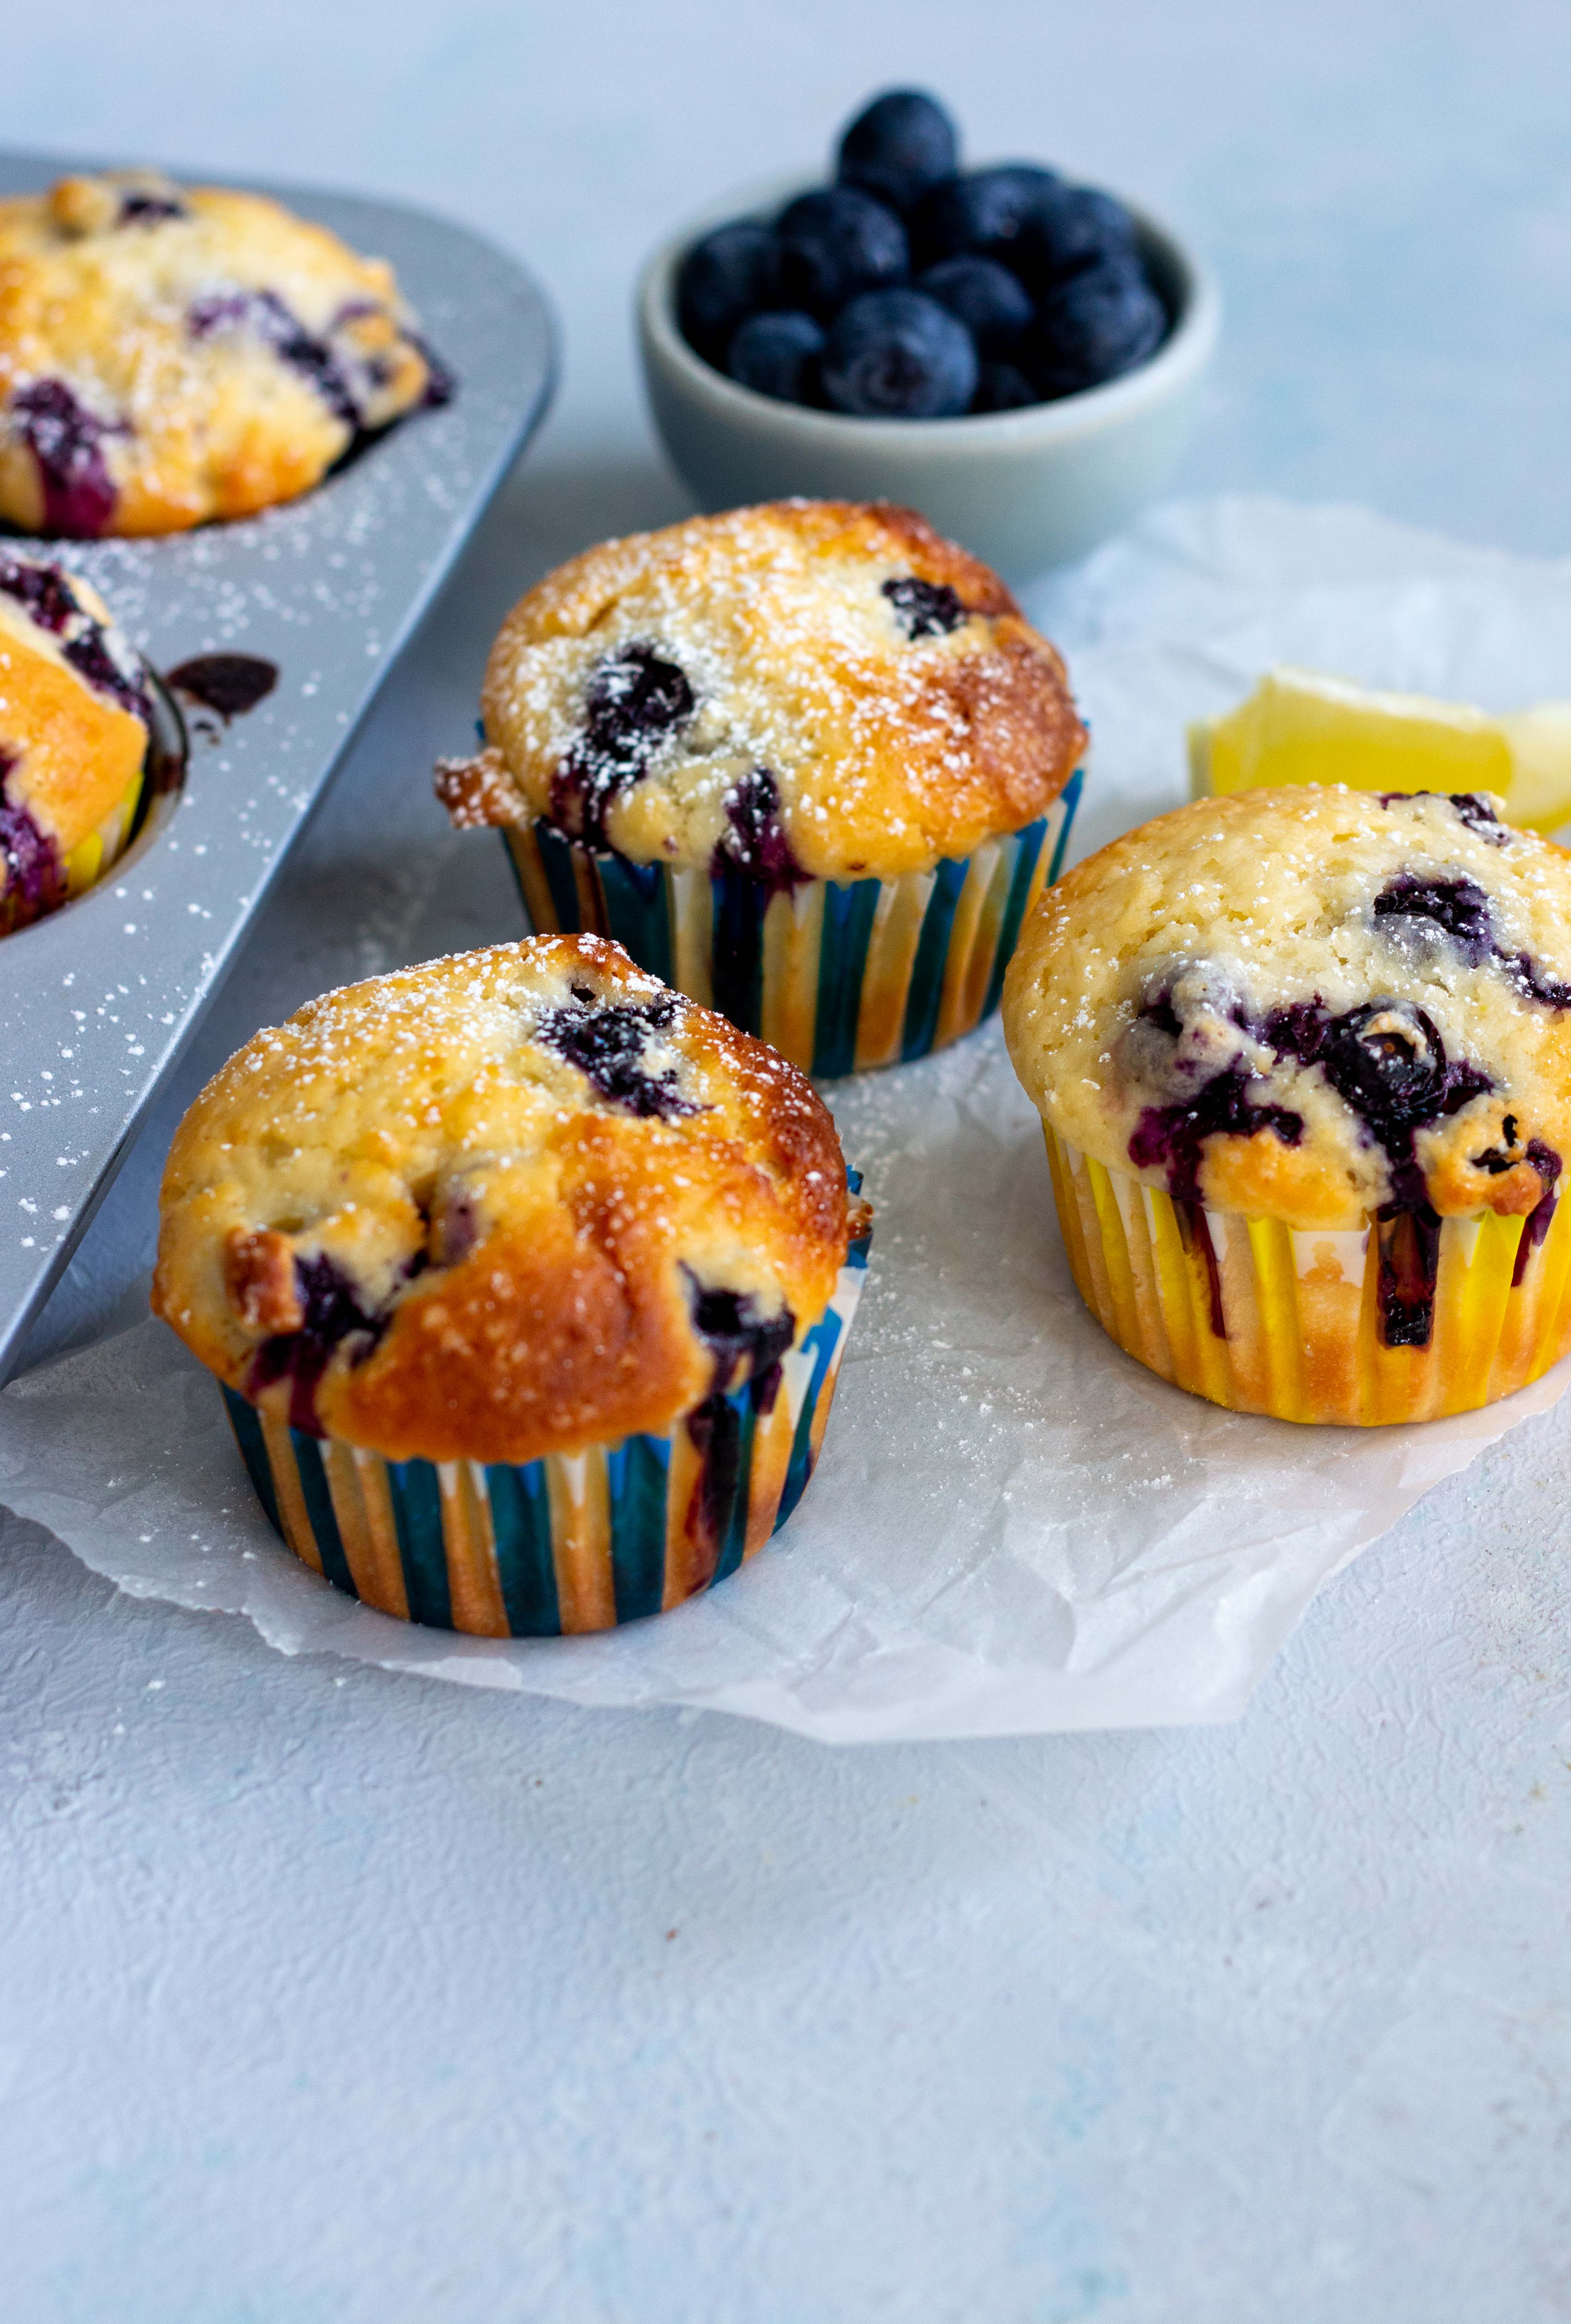 A muffin tray peeking from the left hand sided with two lemon blueberry muffins in it. Next to the tray are three lemon blueberry muffins on top of parchment paper. A mini light blue bowl with blueberries is at the back of the muffins.